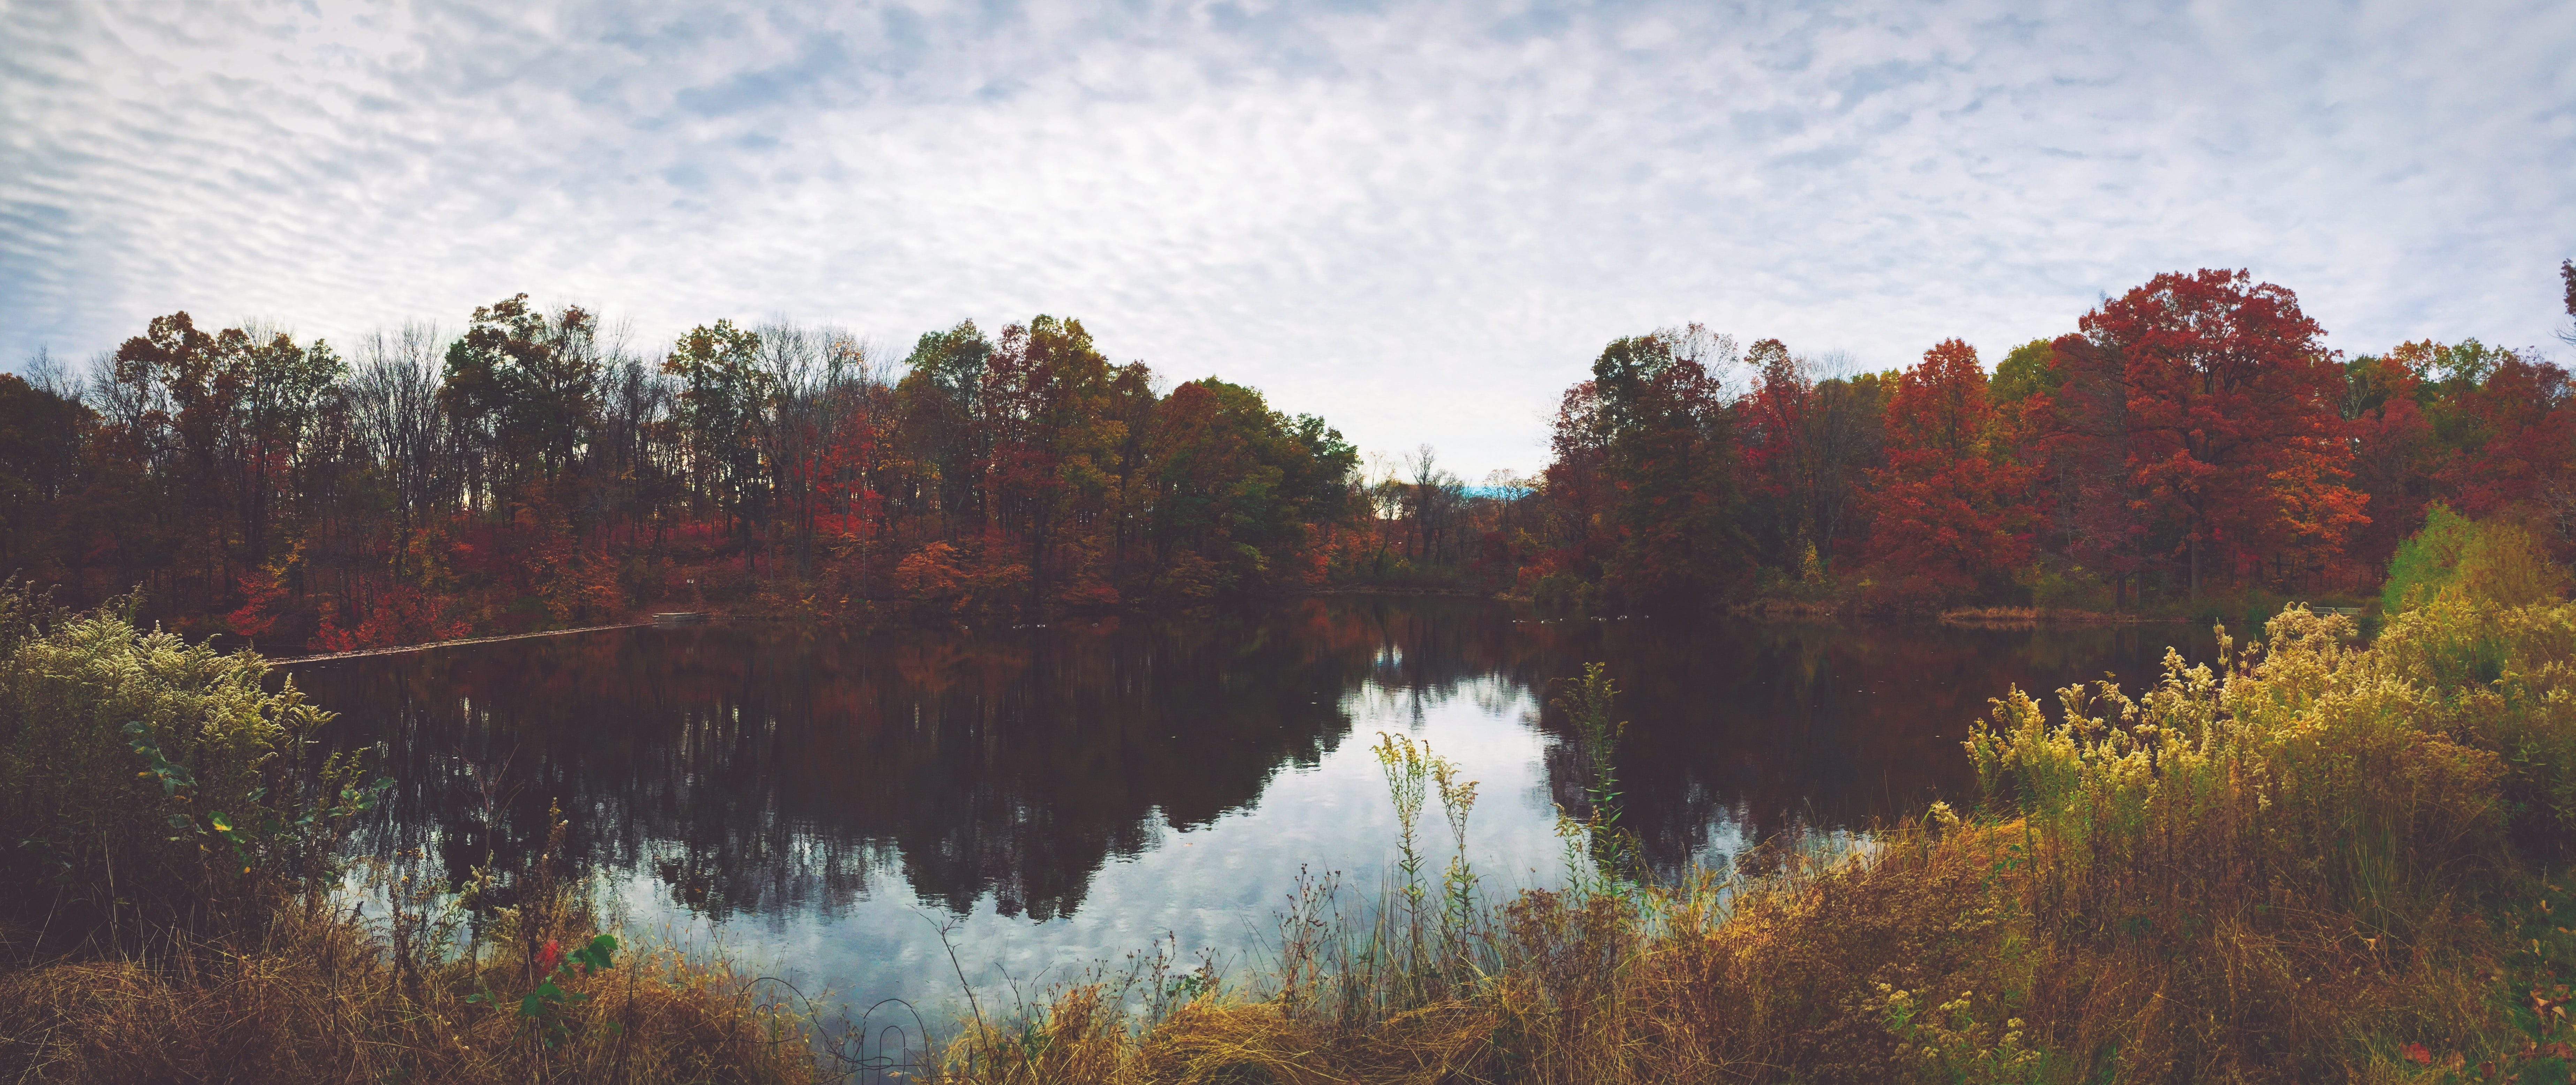 A picturesque panorama of a lake surrounded by yellow and red autumn vegetation